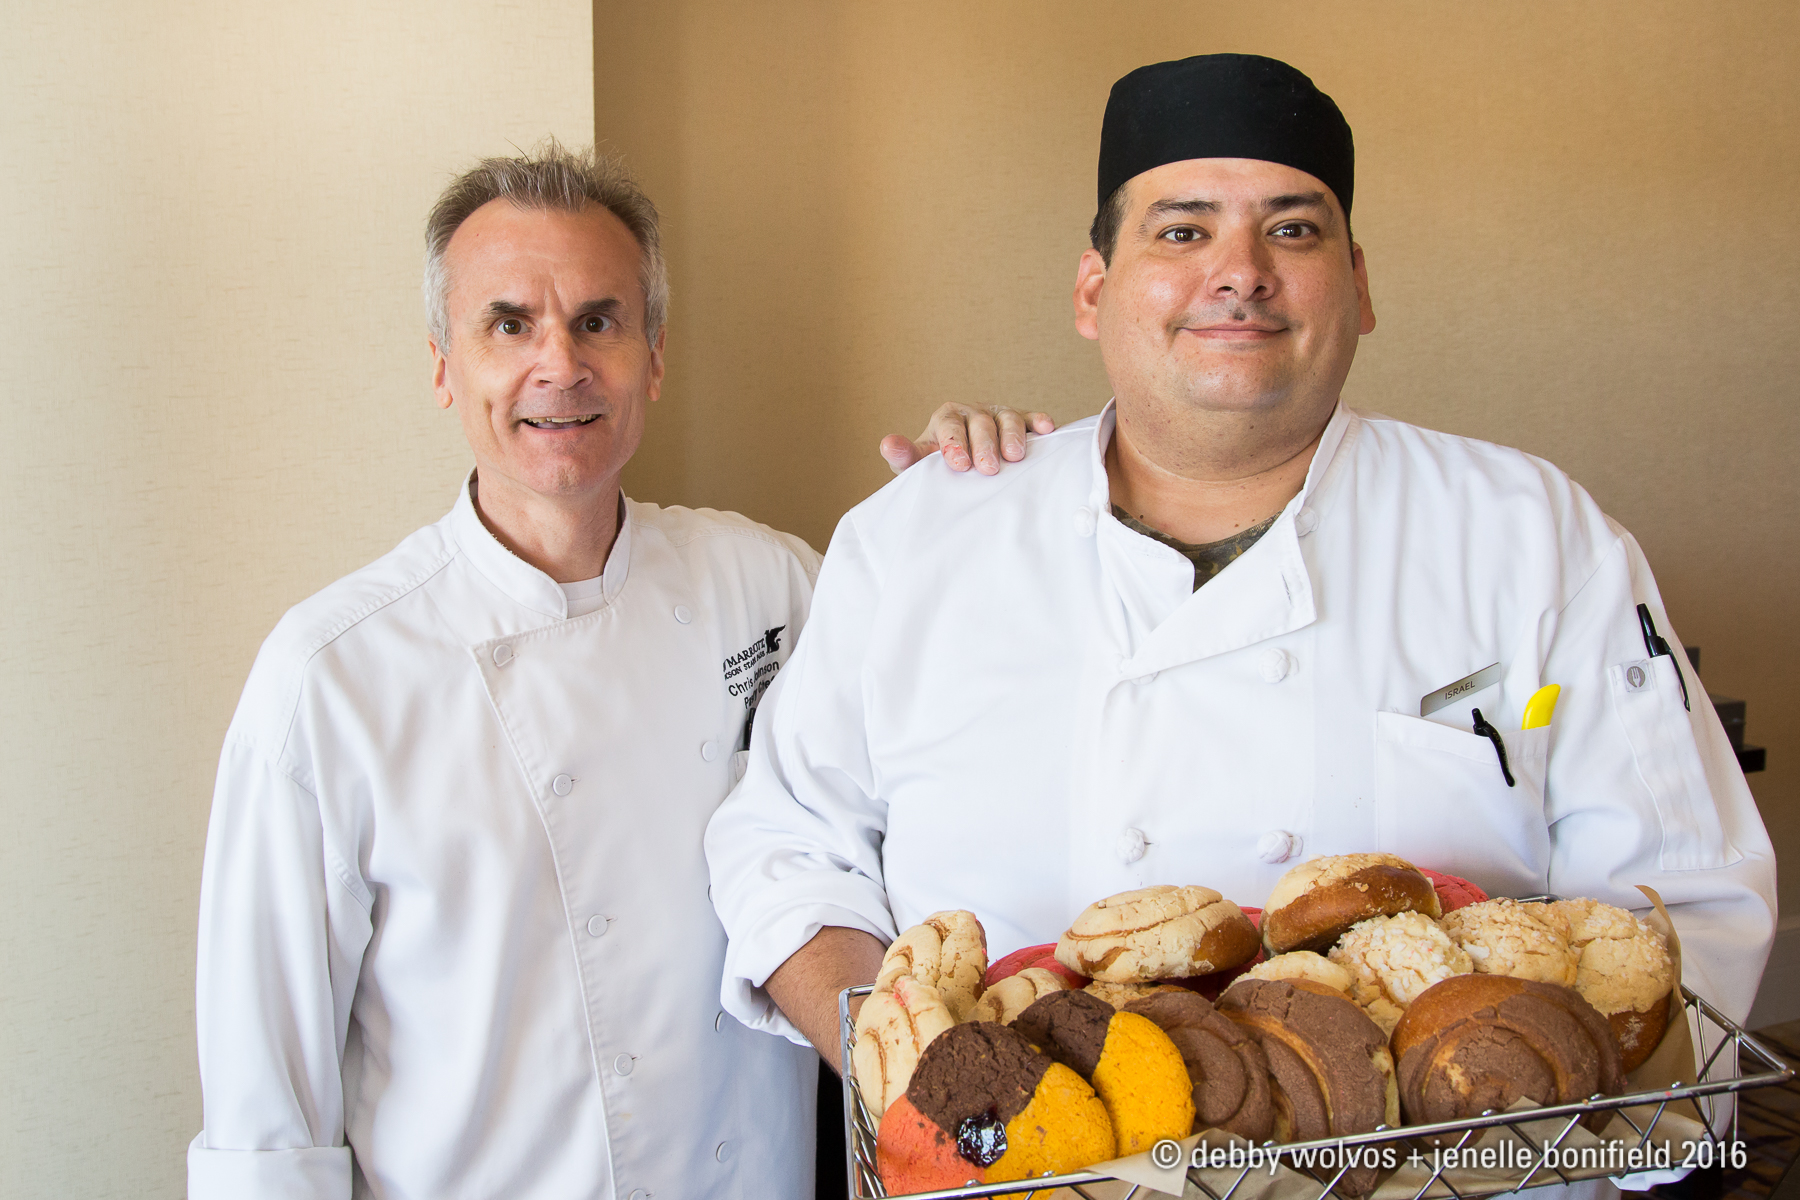 Pastry Chefs Chris Johnson and Israel